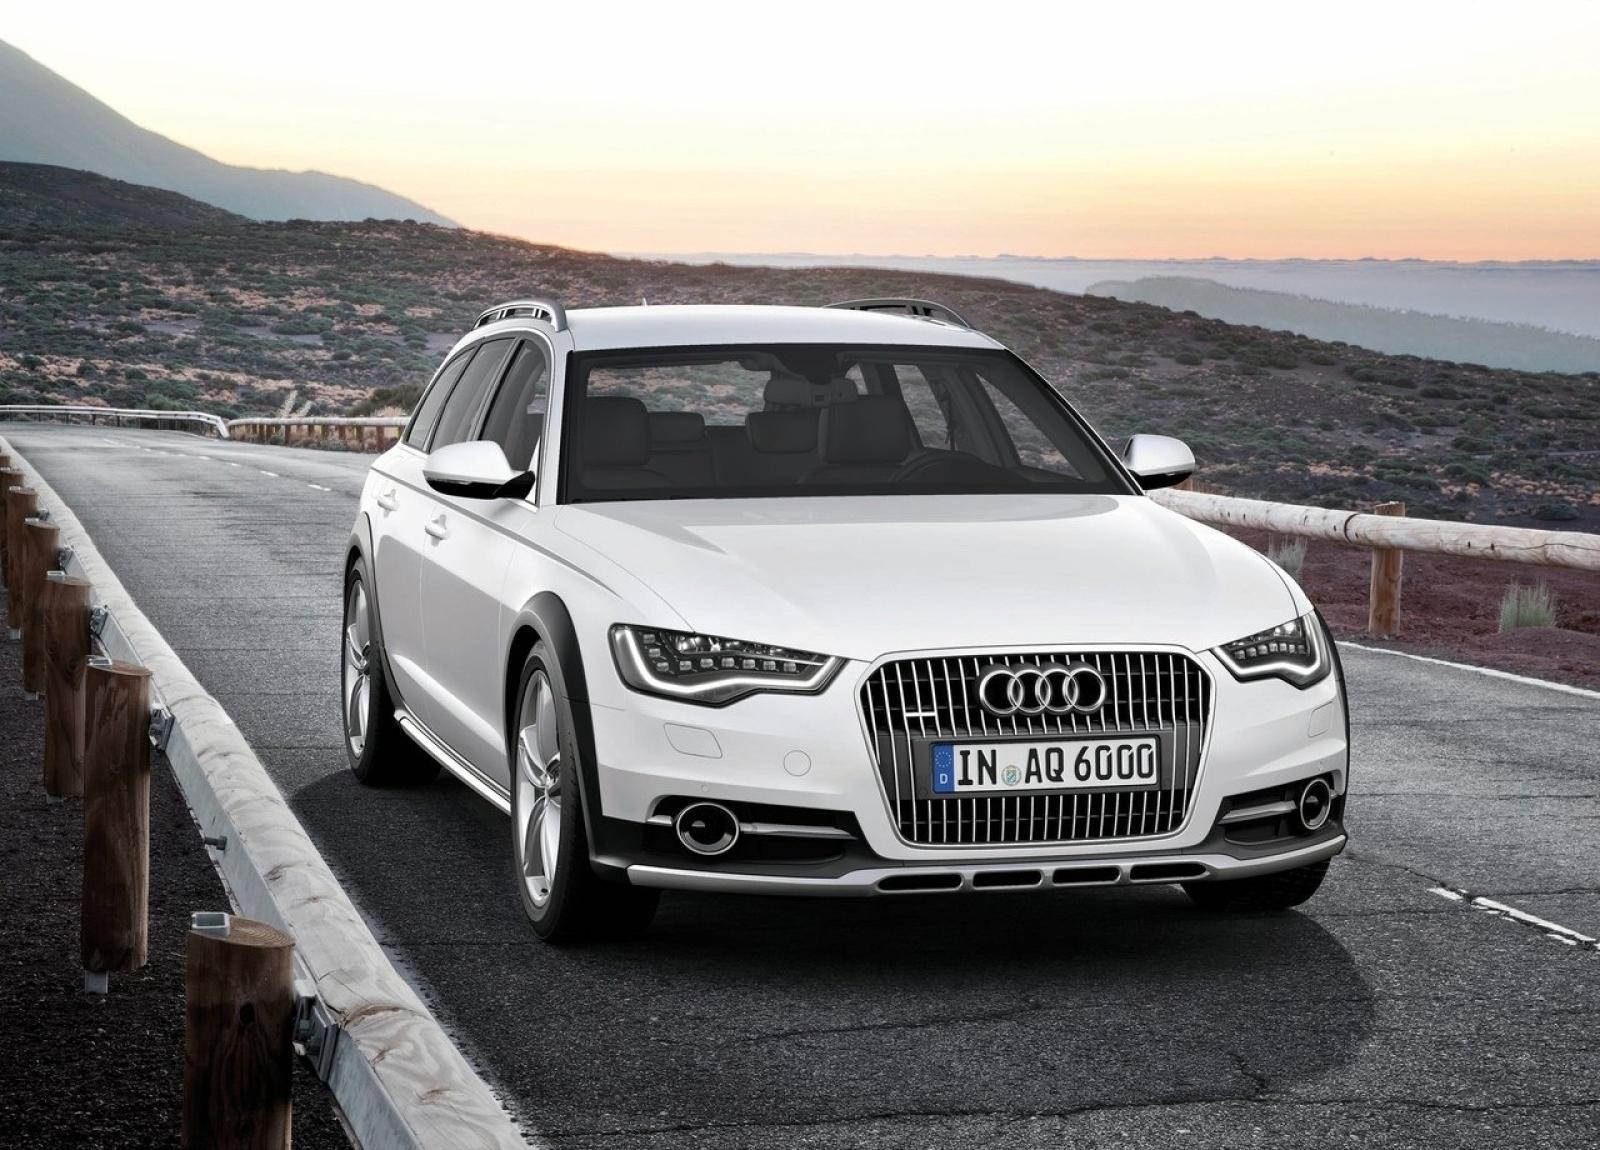 Audi A6 Allroad 3.0 TDI Technical Specifications